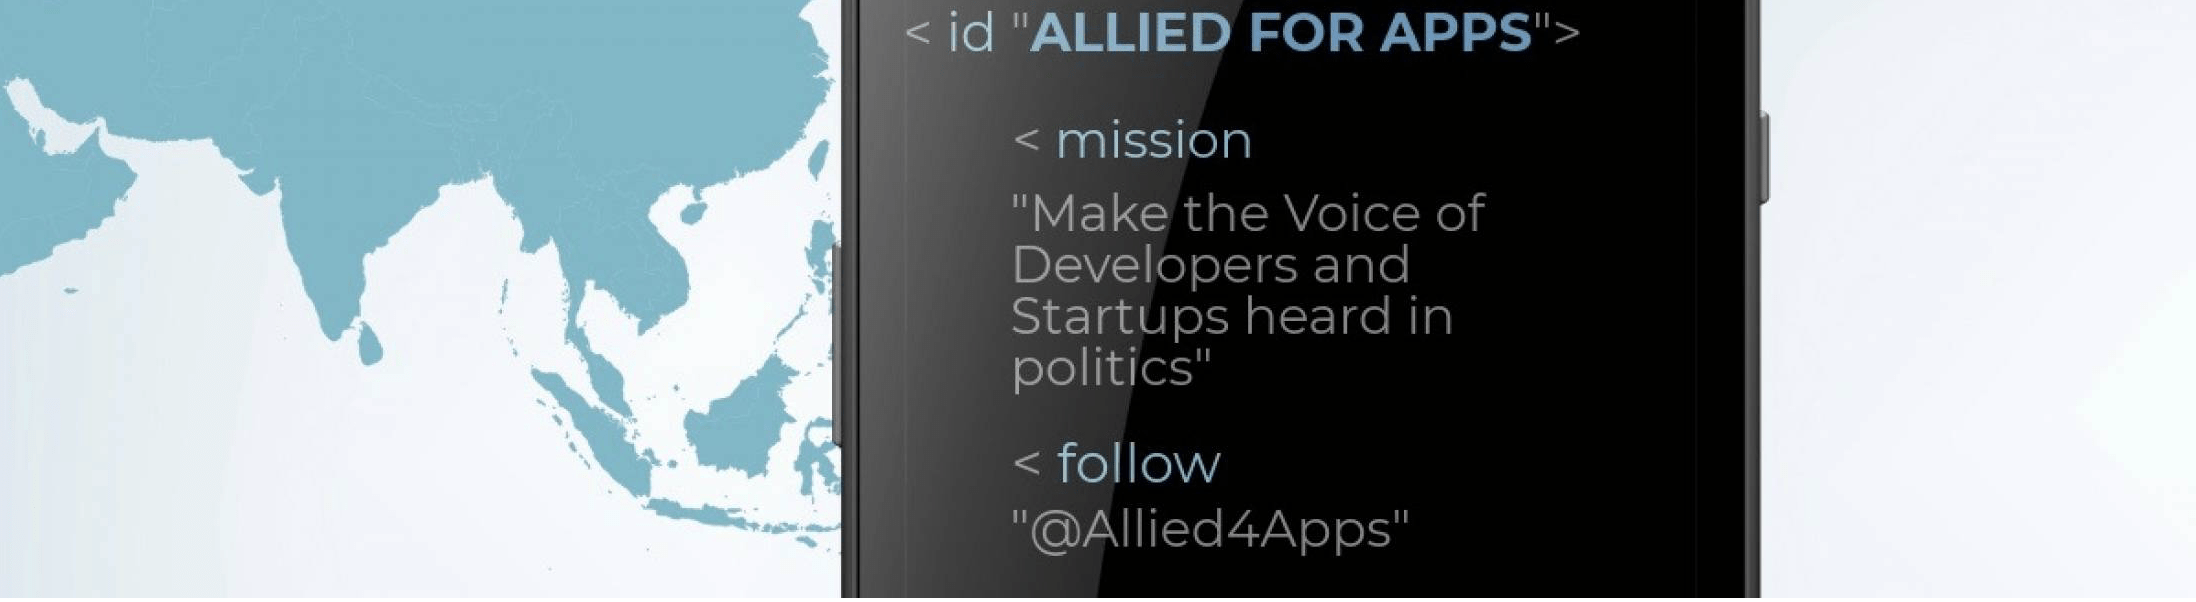 Allied4Apps